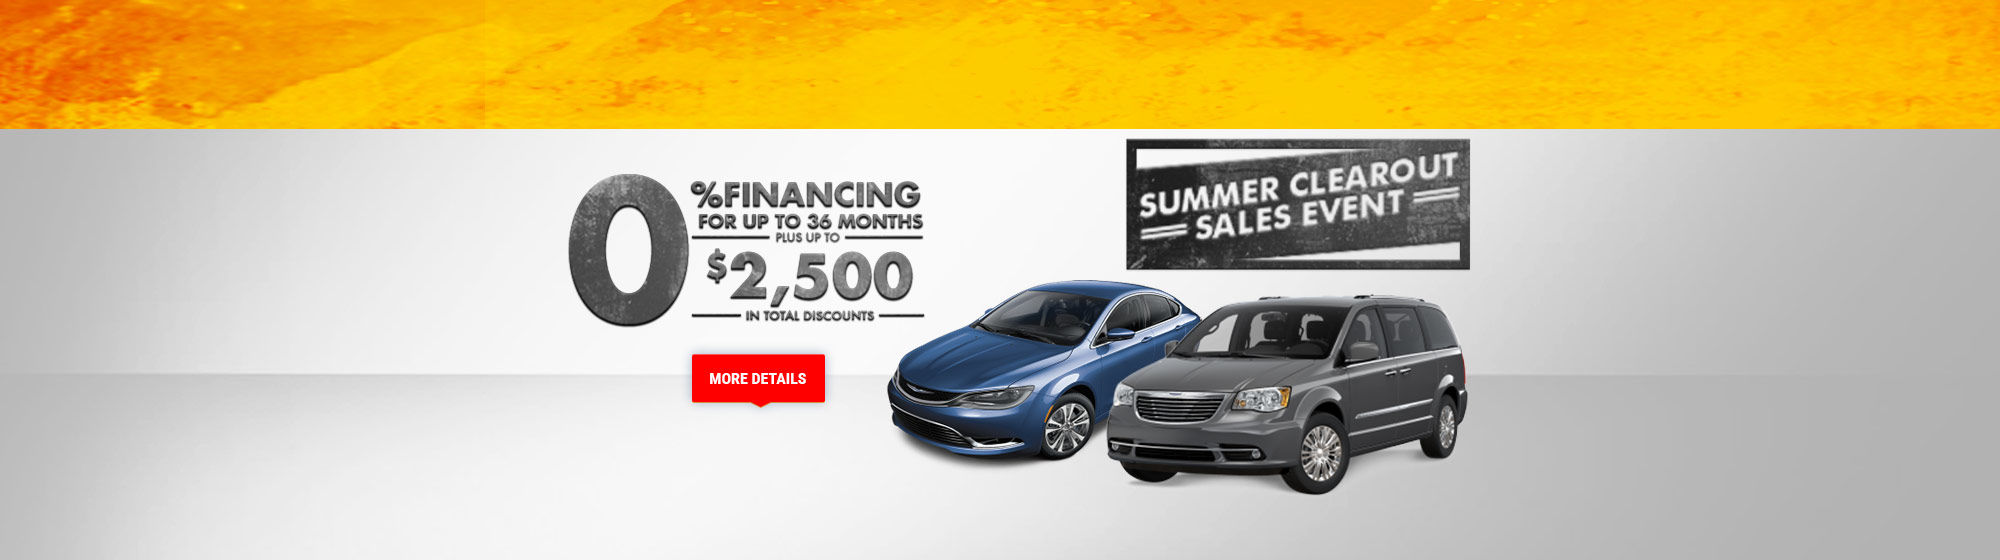 Summer Clearout Sales Event - Chrysler